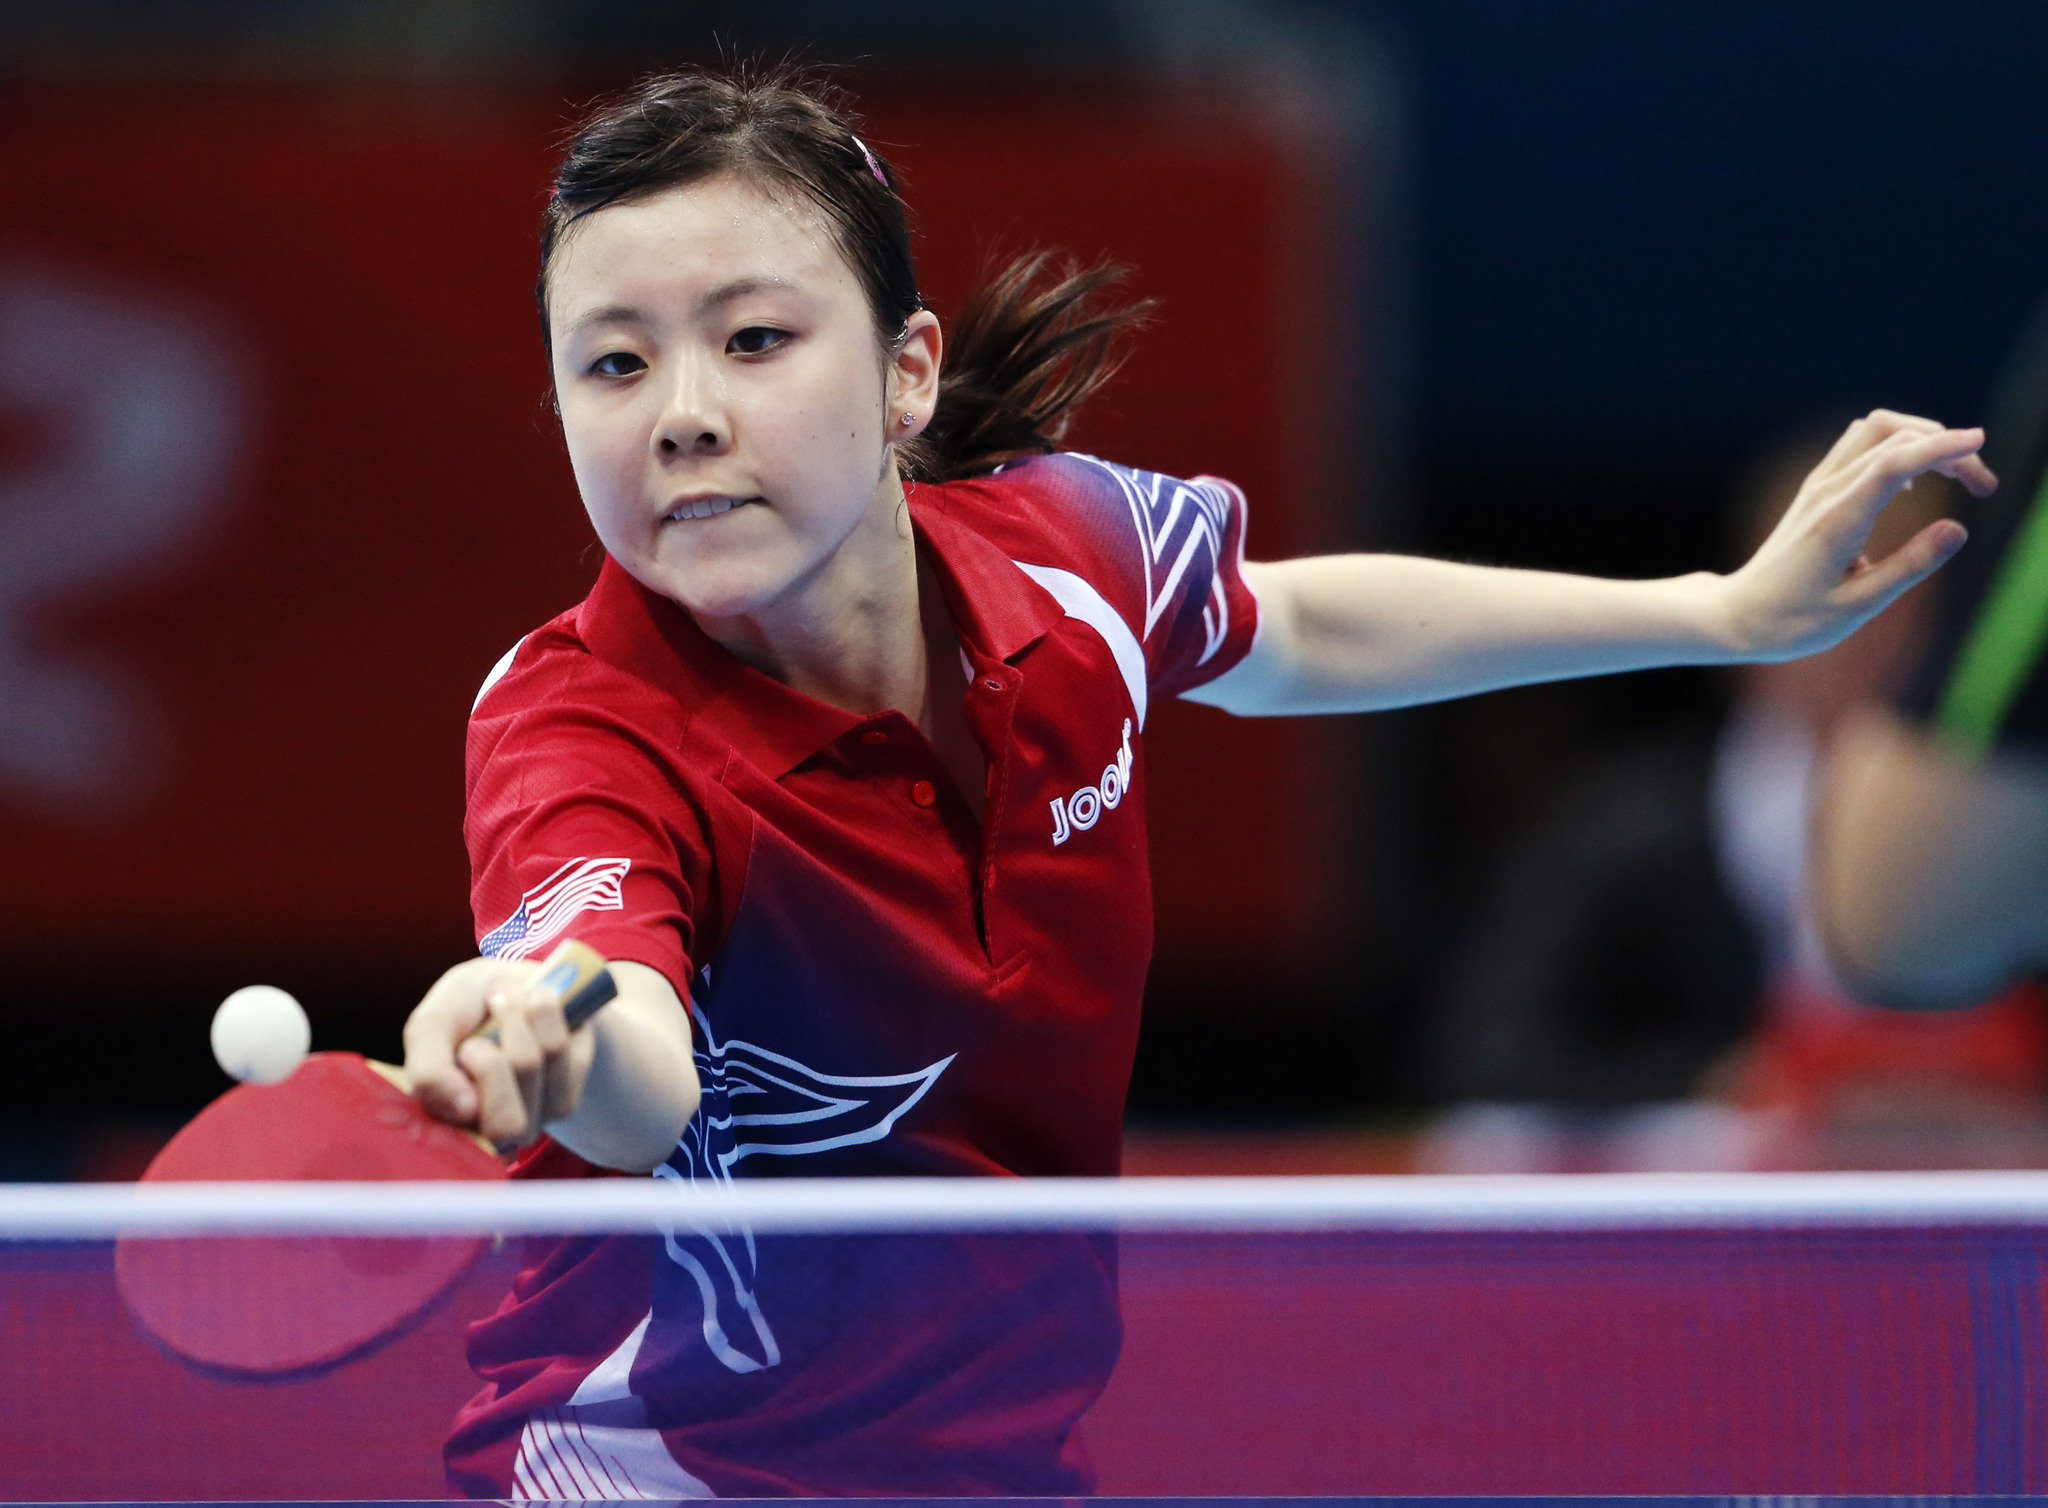 Ariel Hsing Friend Of Billionaires Pulls Upset To